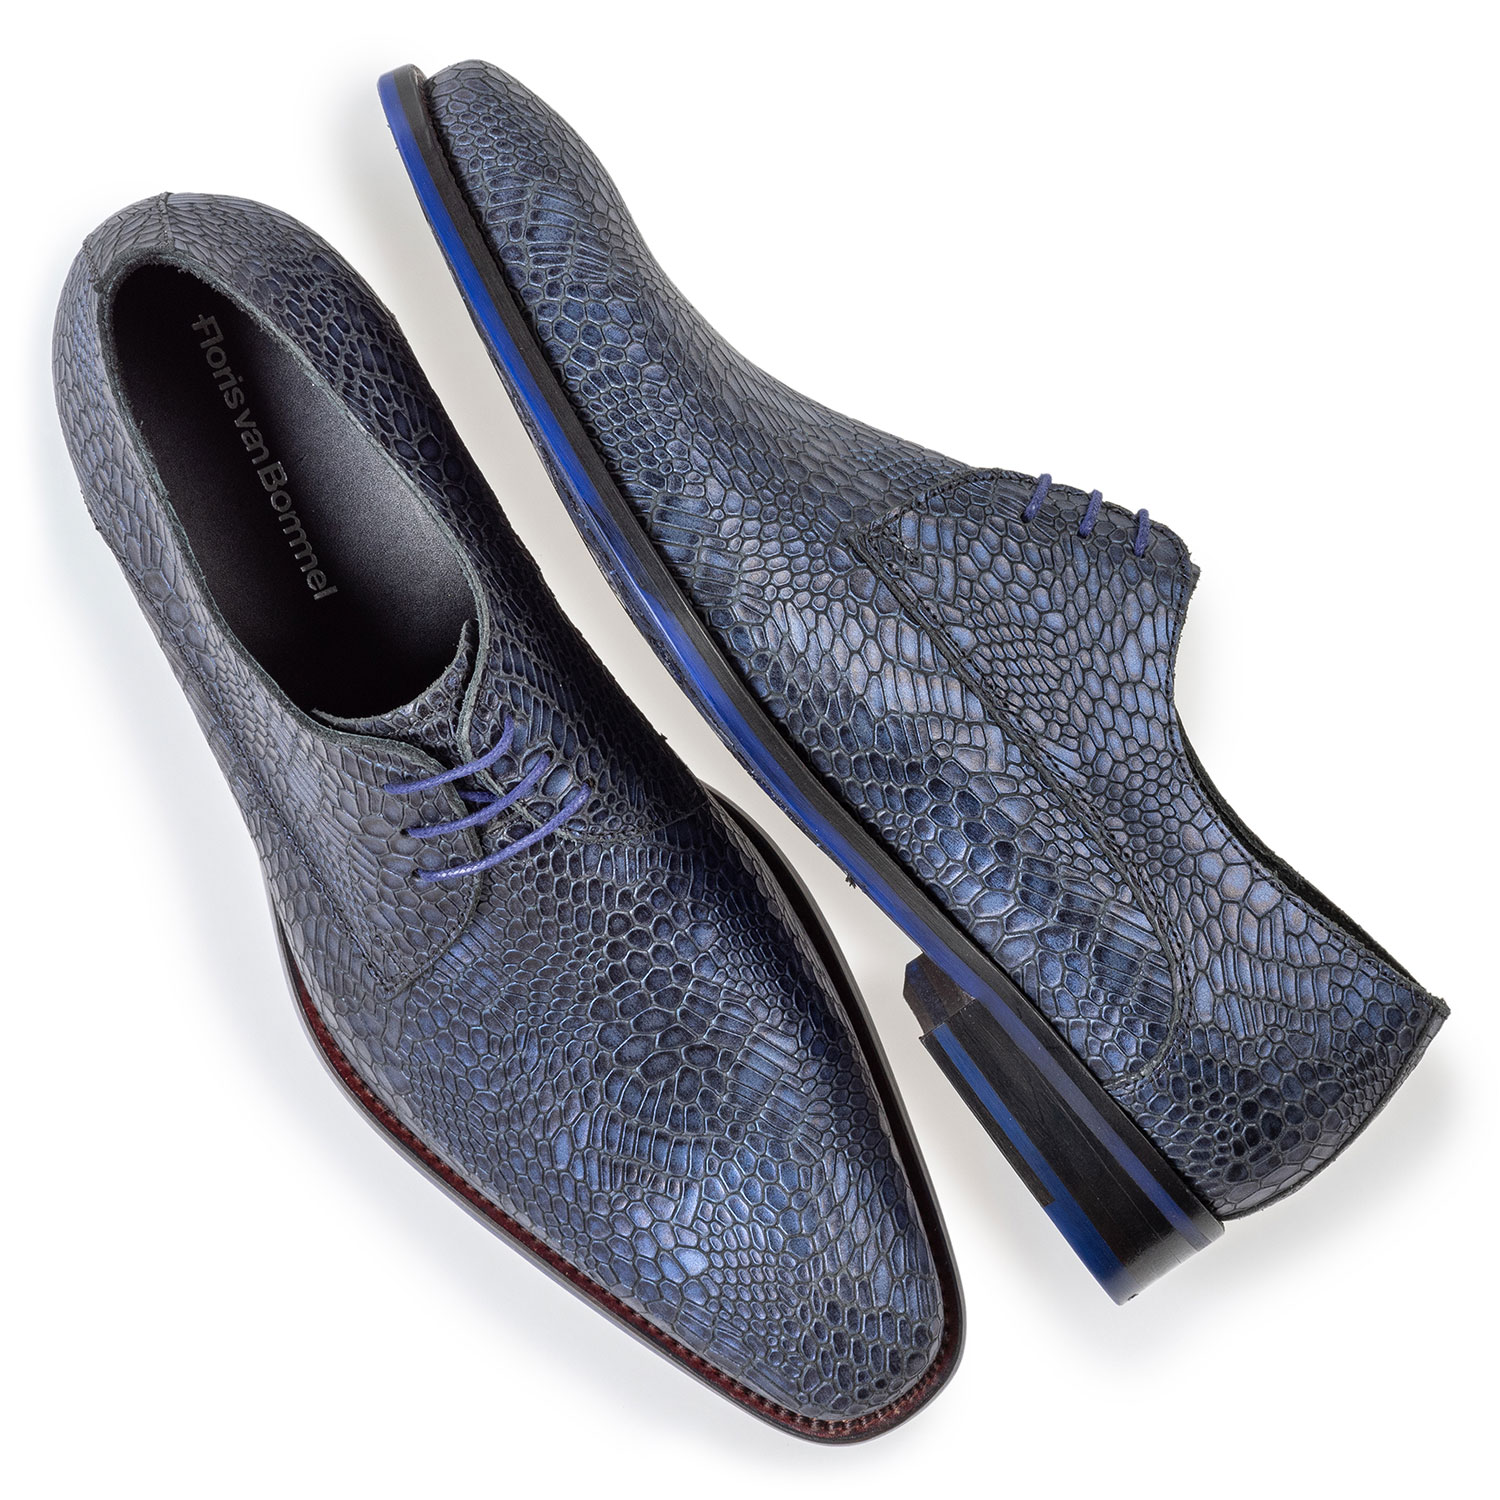 18159/28 - Lace shoe metallic blue